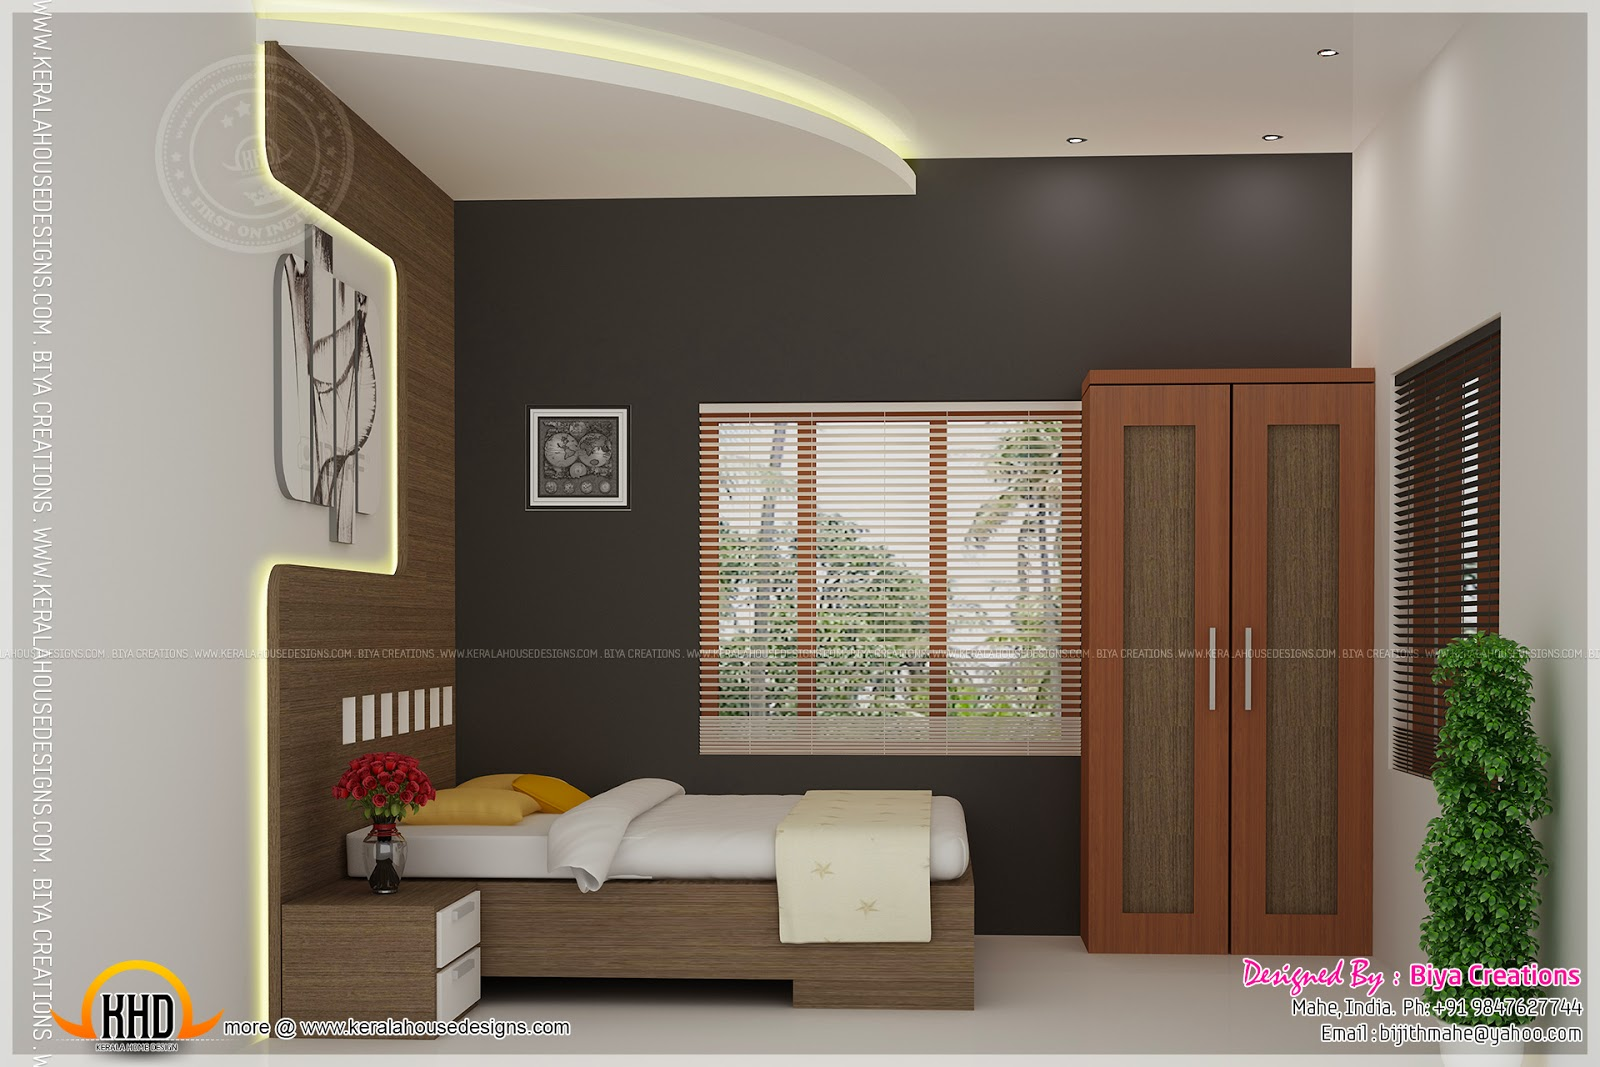 Bedroom kid bedroom and kitchen interior kerala home for House interior design kerala photos